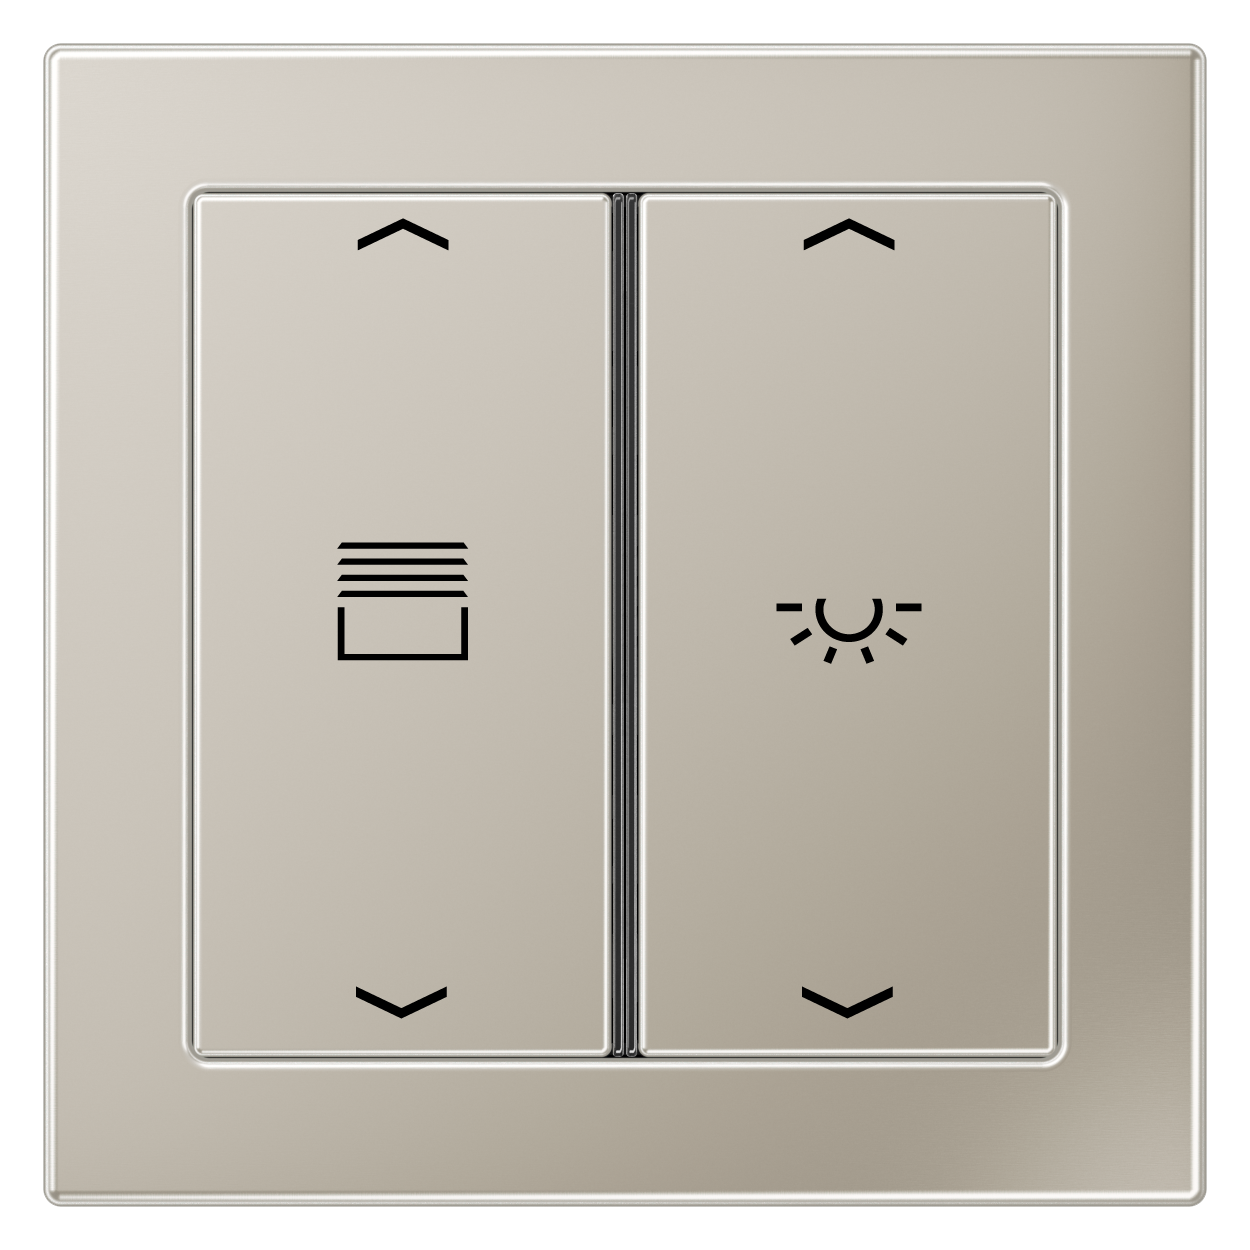 JUNG_Flat_Design_stainless-steel_2button_symbols